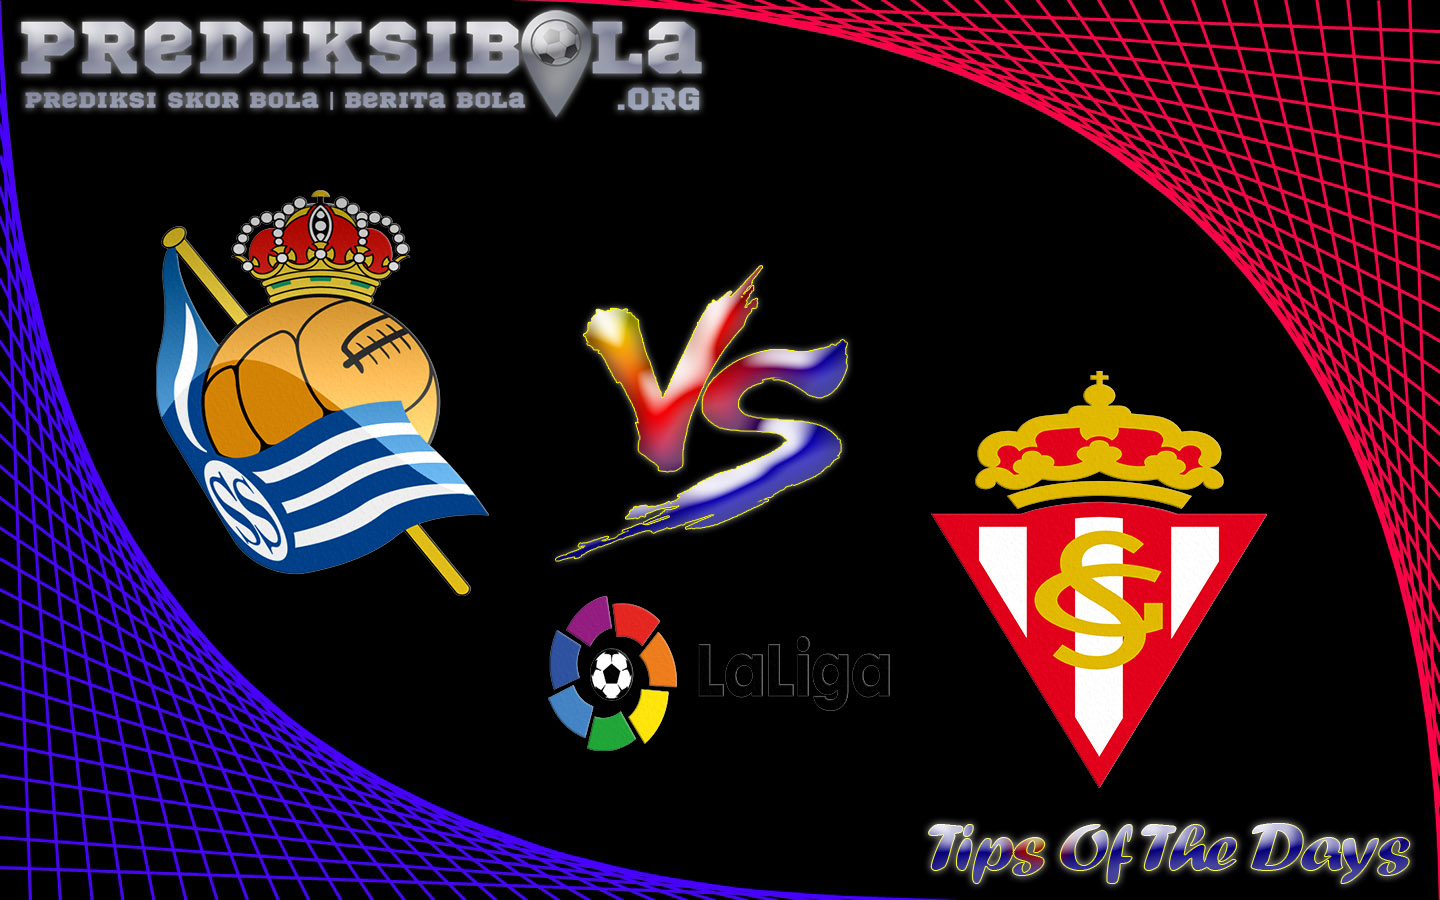 Prediksi Skor Real Sociedad Vs Sporting Gijon 11 April 2017